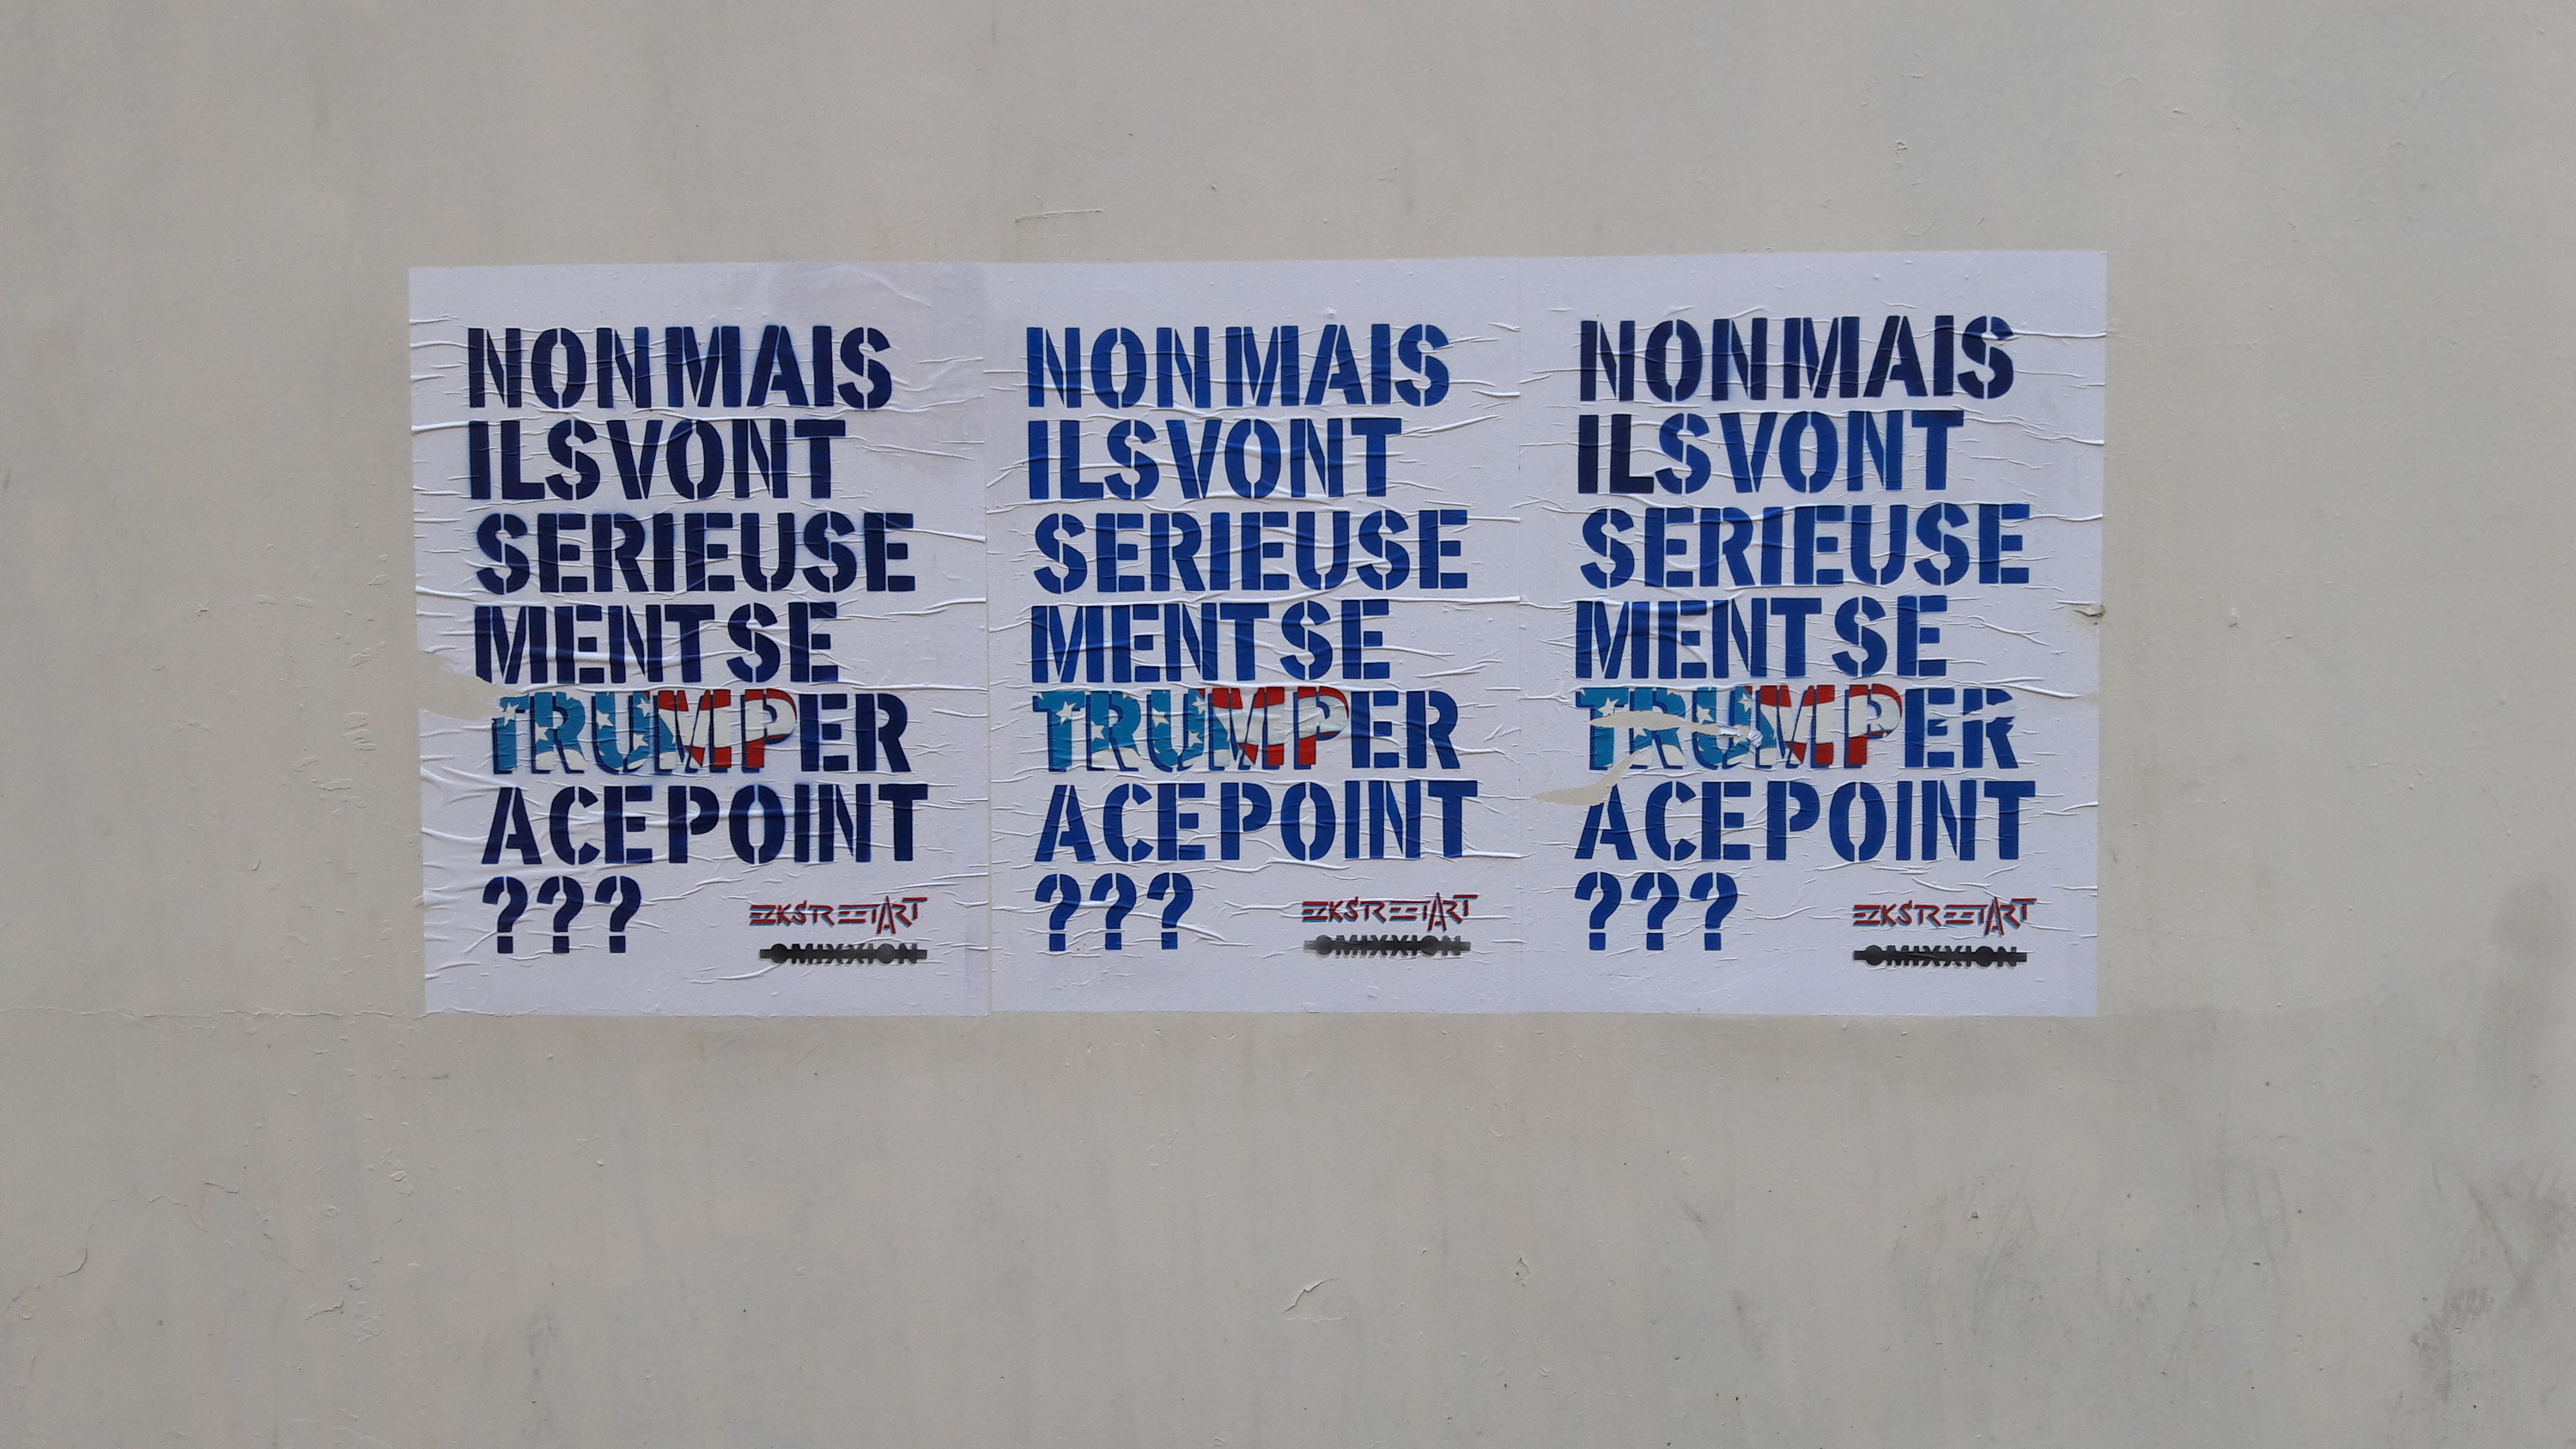 Le street art engagé contre Donald Trump